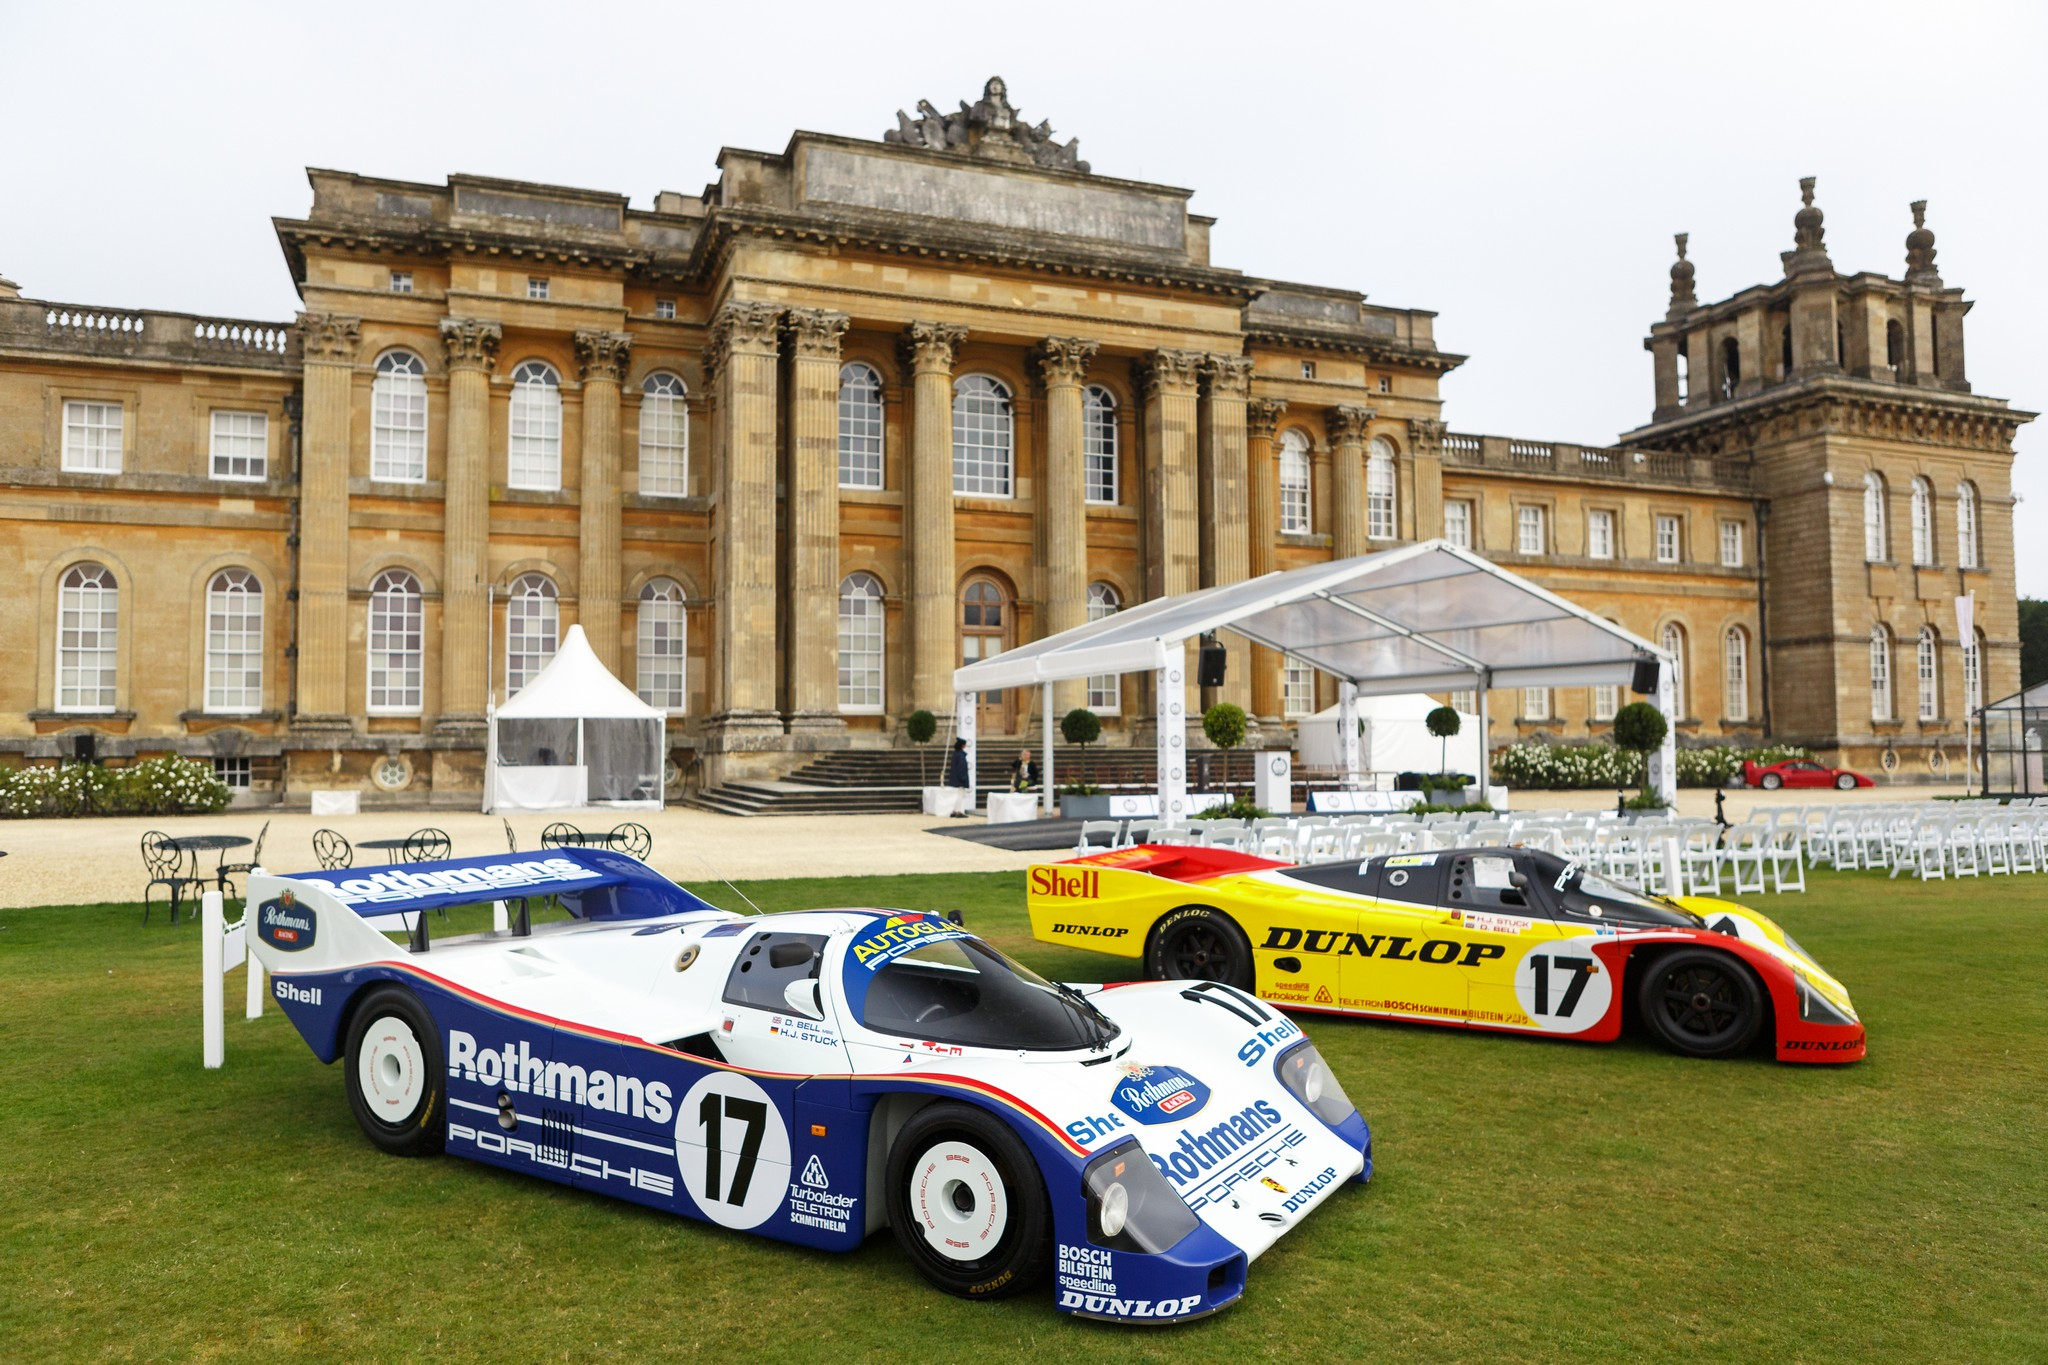 Historic Porsche Endurance Racers stand in front of Blenheim Palace